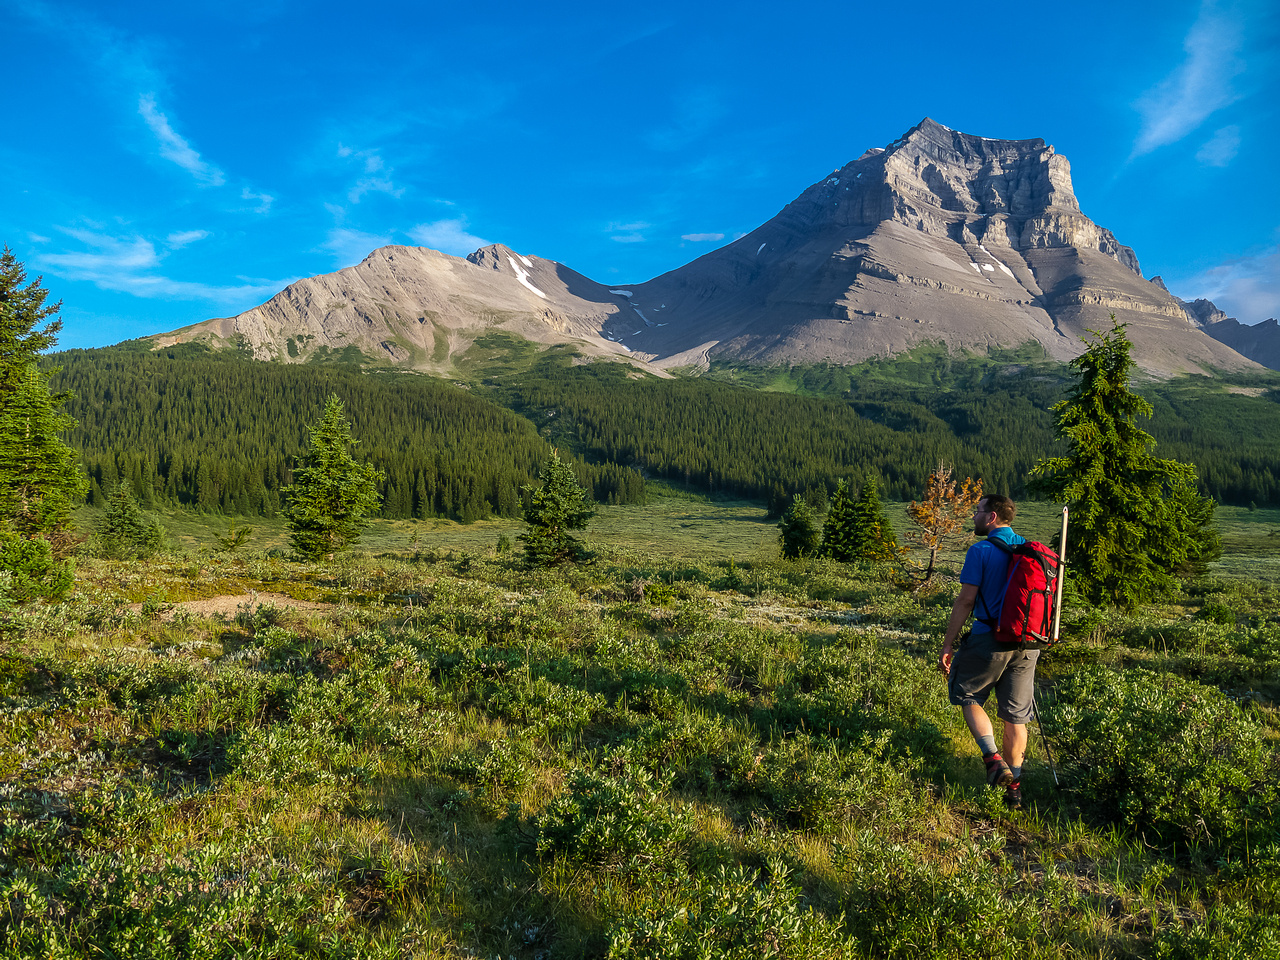 We've already done 500 vertical meters and are crossing the meadows towards Mount Coleman.